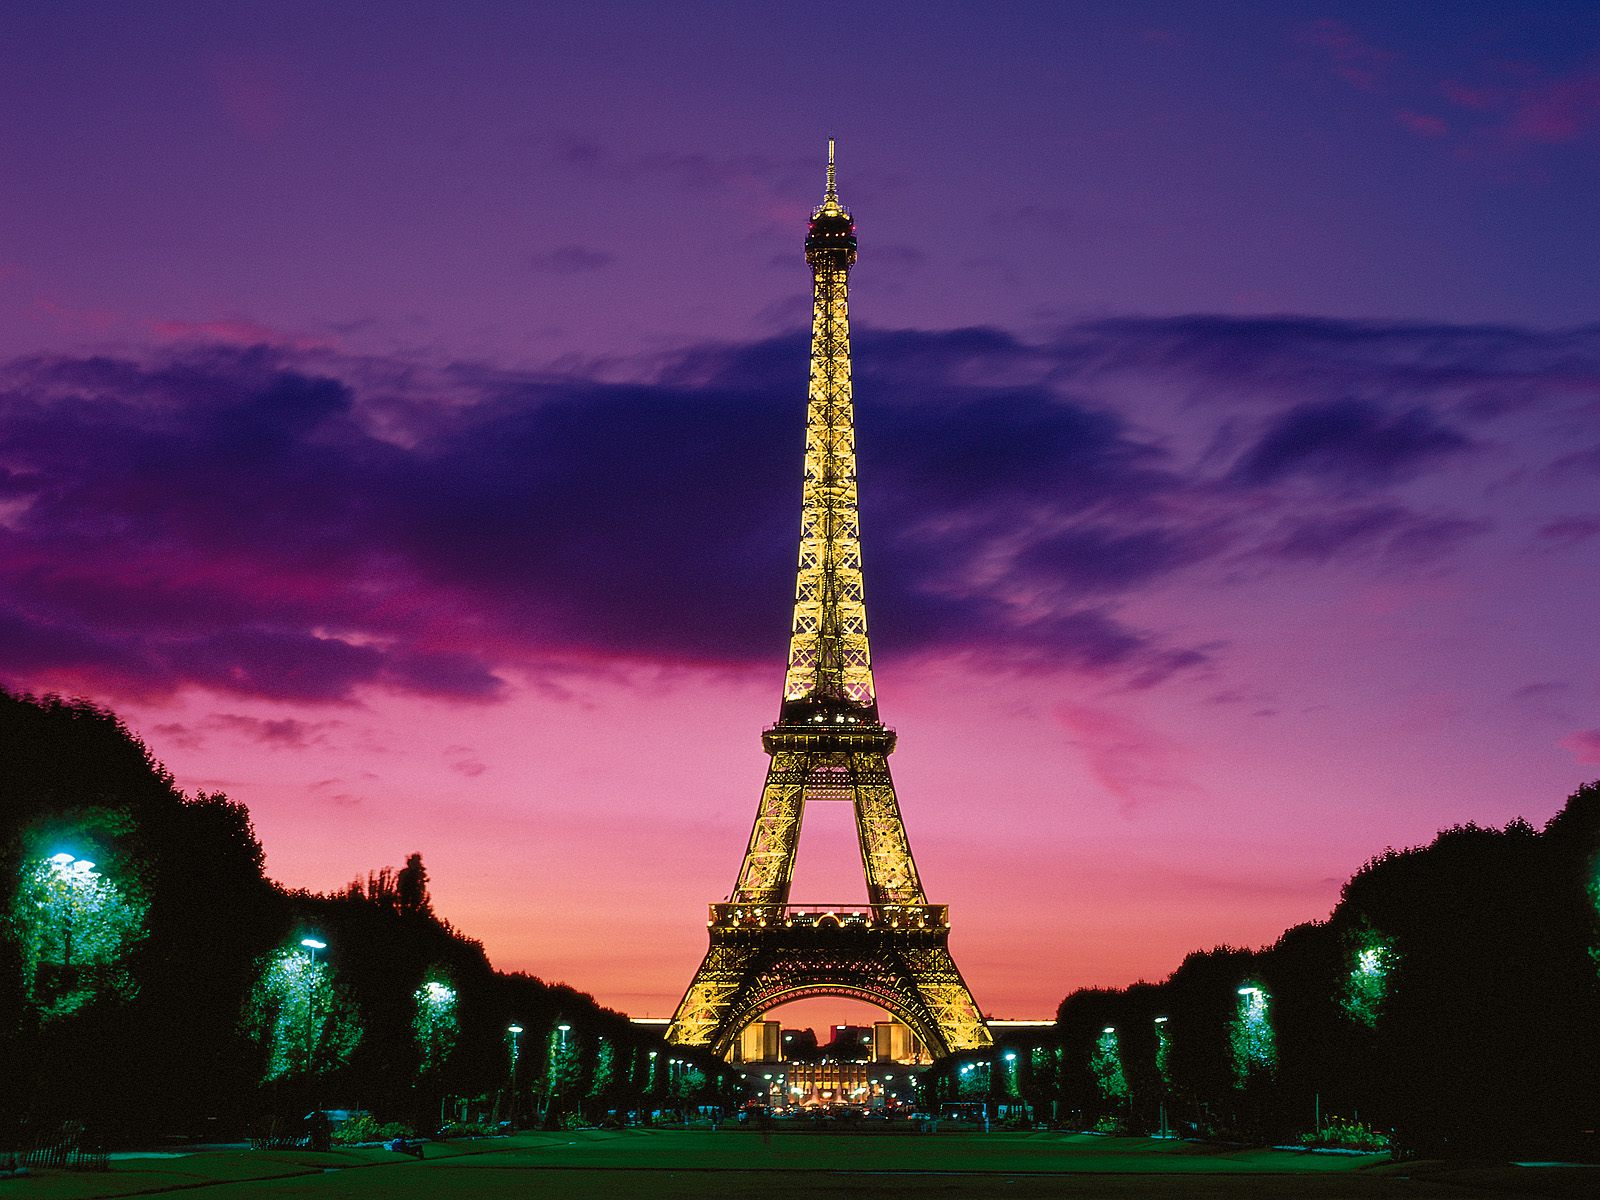 Eiffel Tower At Night Paris France Wallpaper Hd